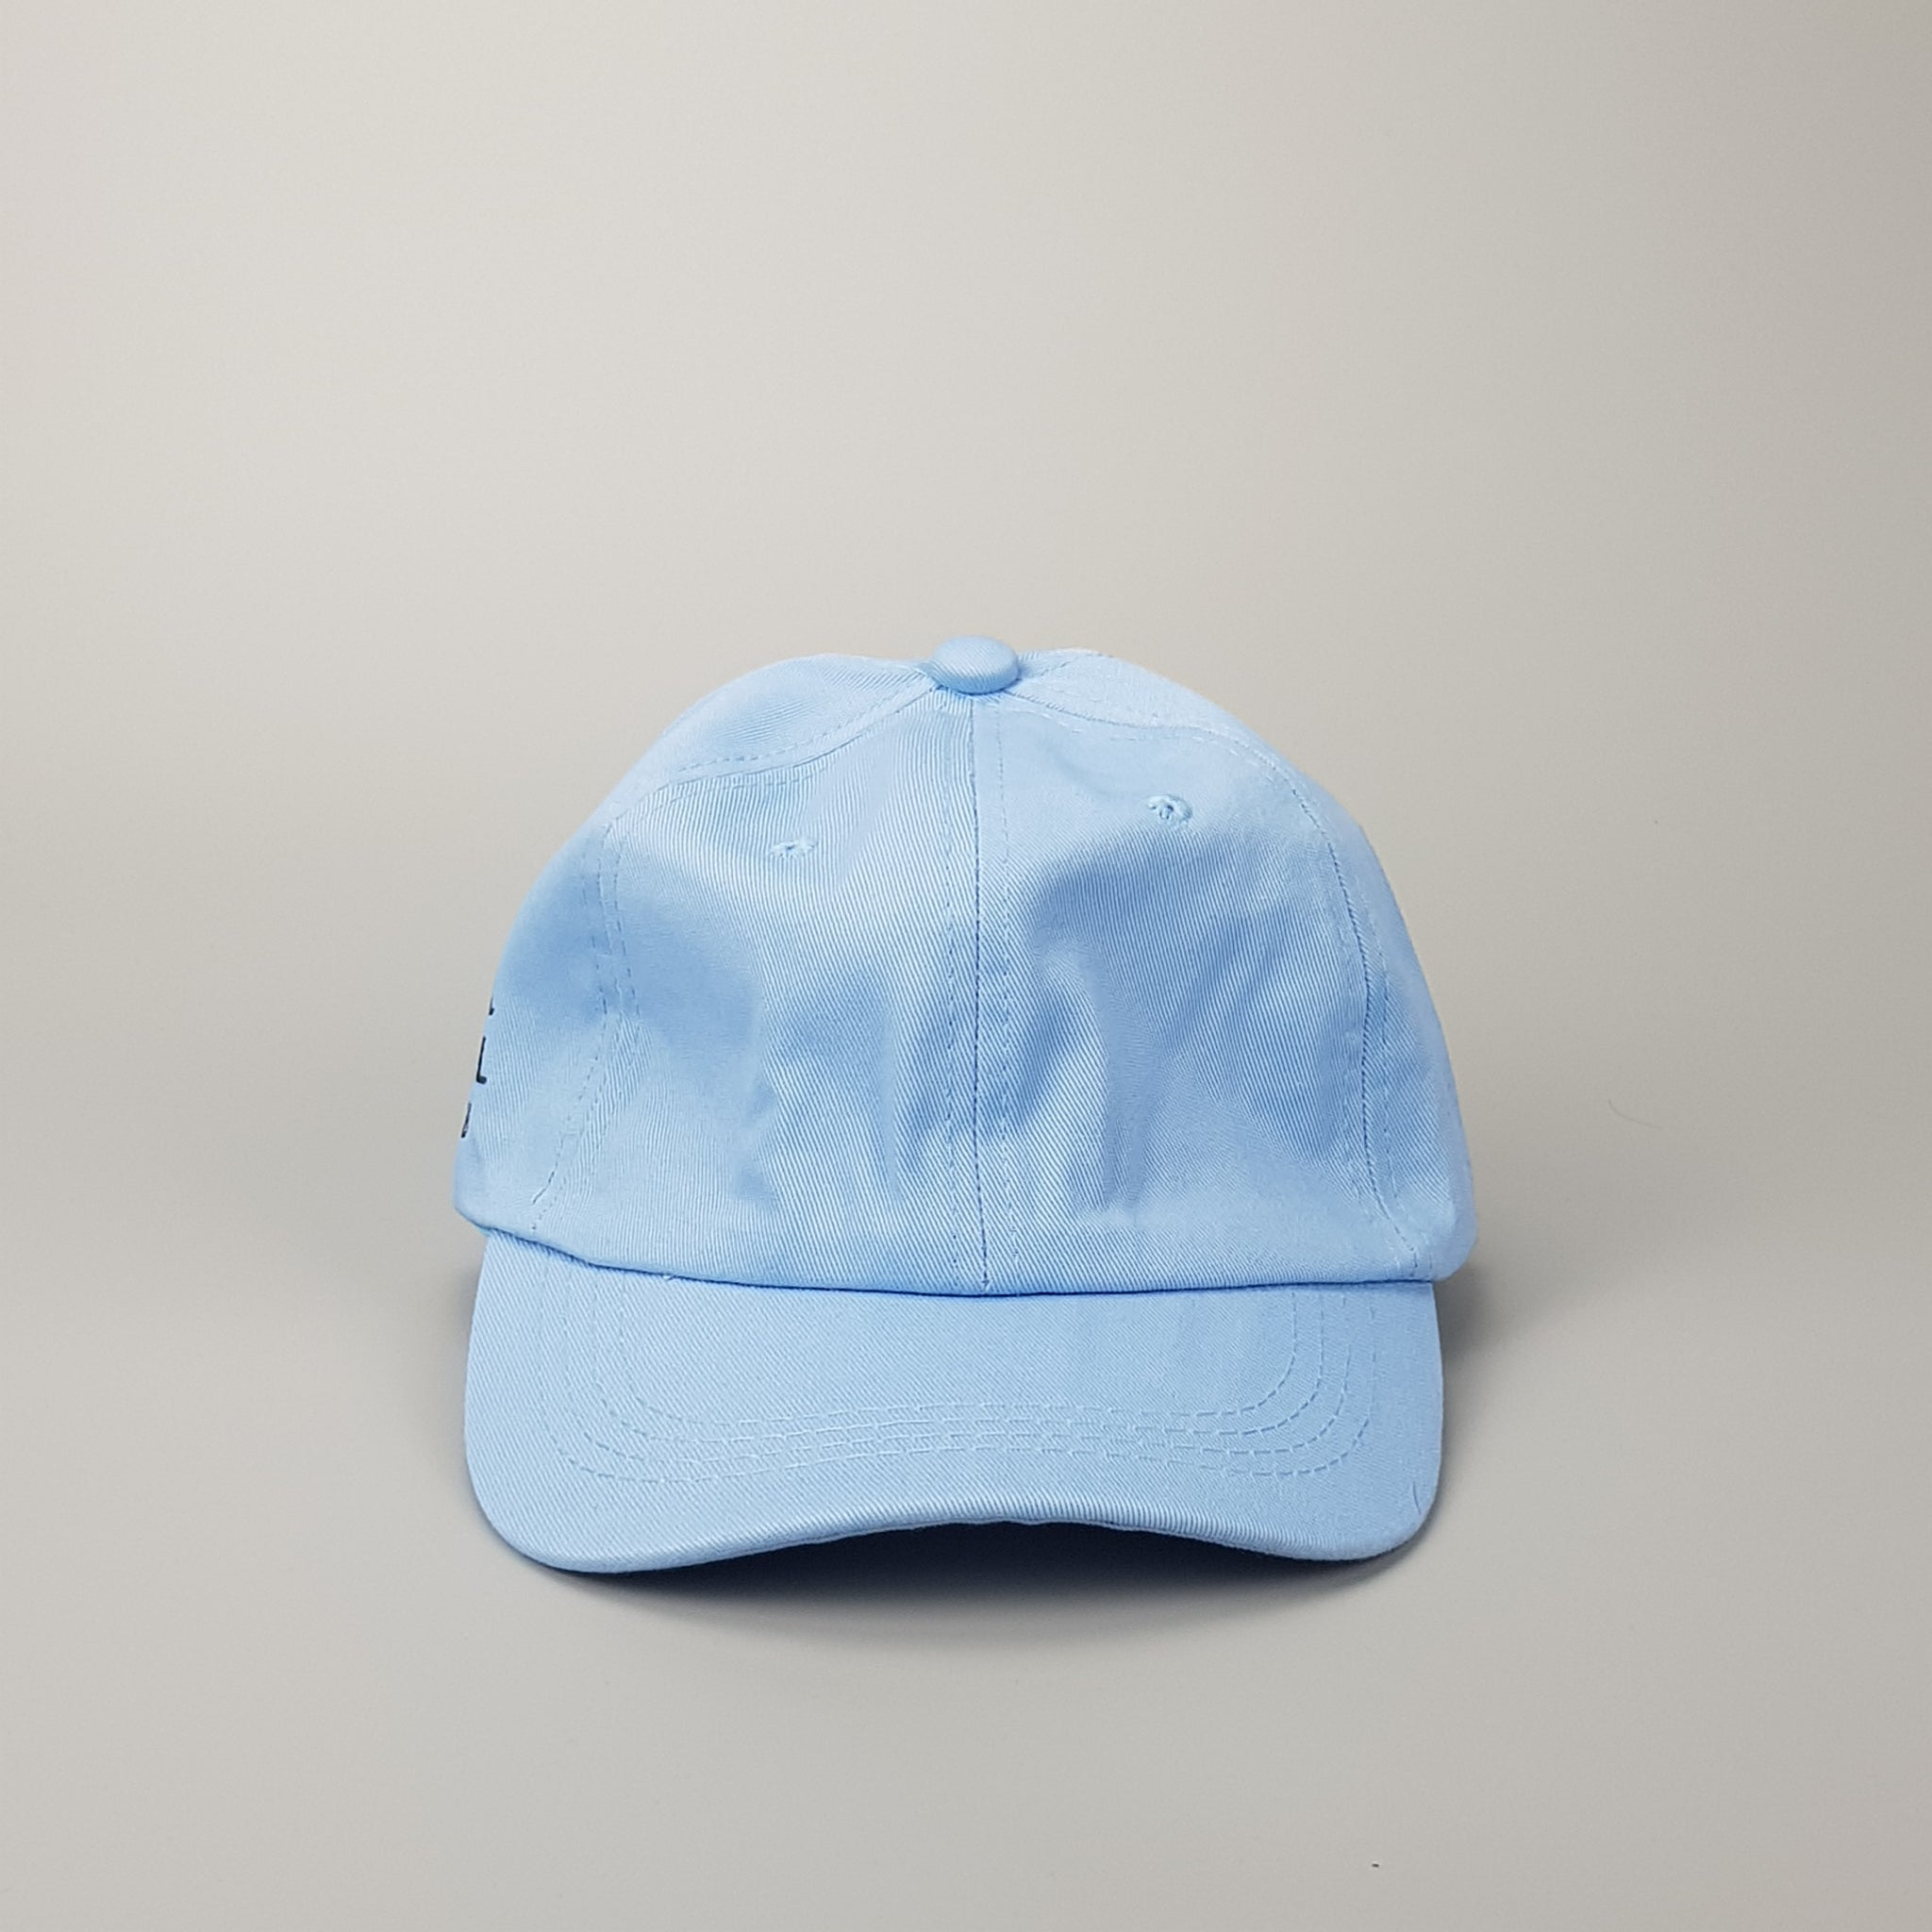 467be27c27a88 ASSC Weird Cap - Baby Blue - Low-Profile Store ...